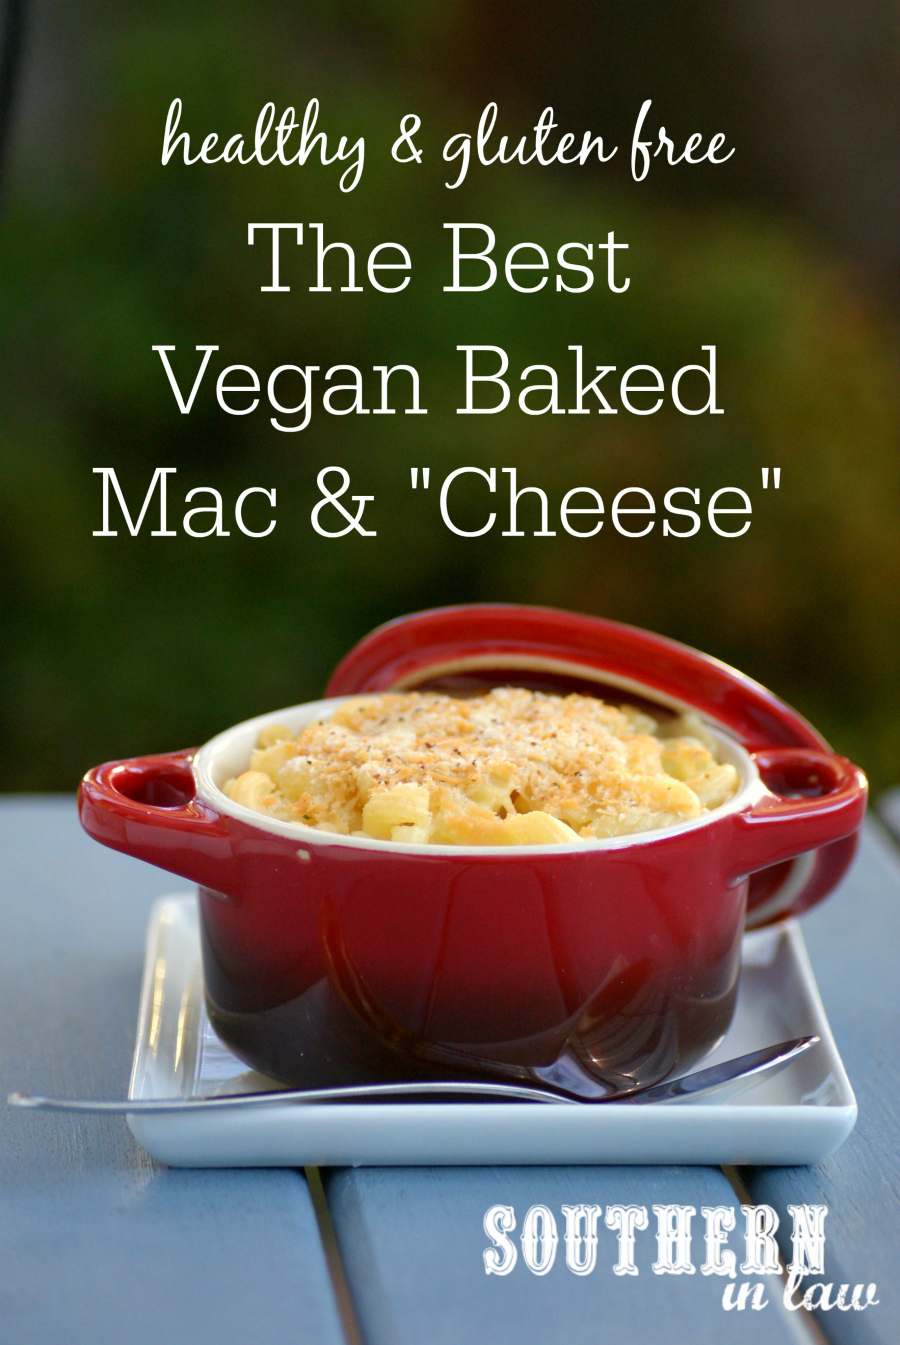 ... Recipe: The Best Vegan Baked Mac and Cheese (Healthy & Gluten Free